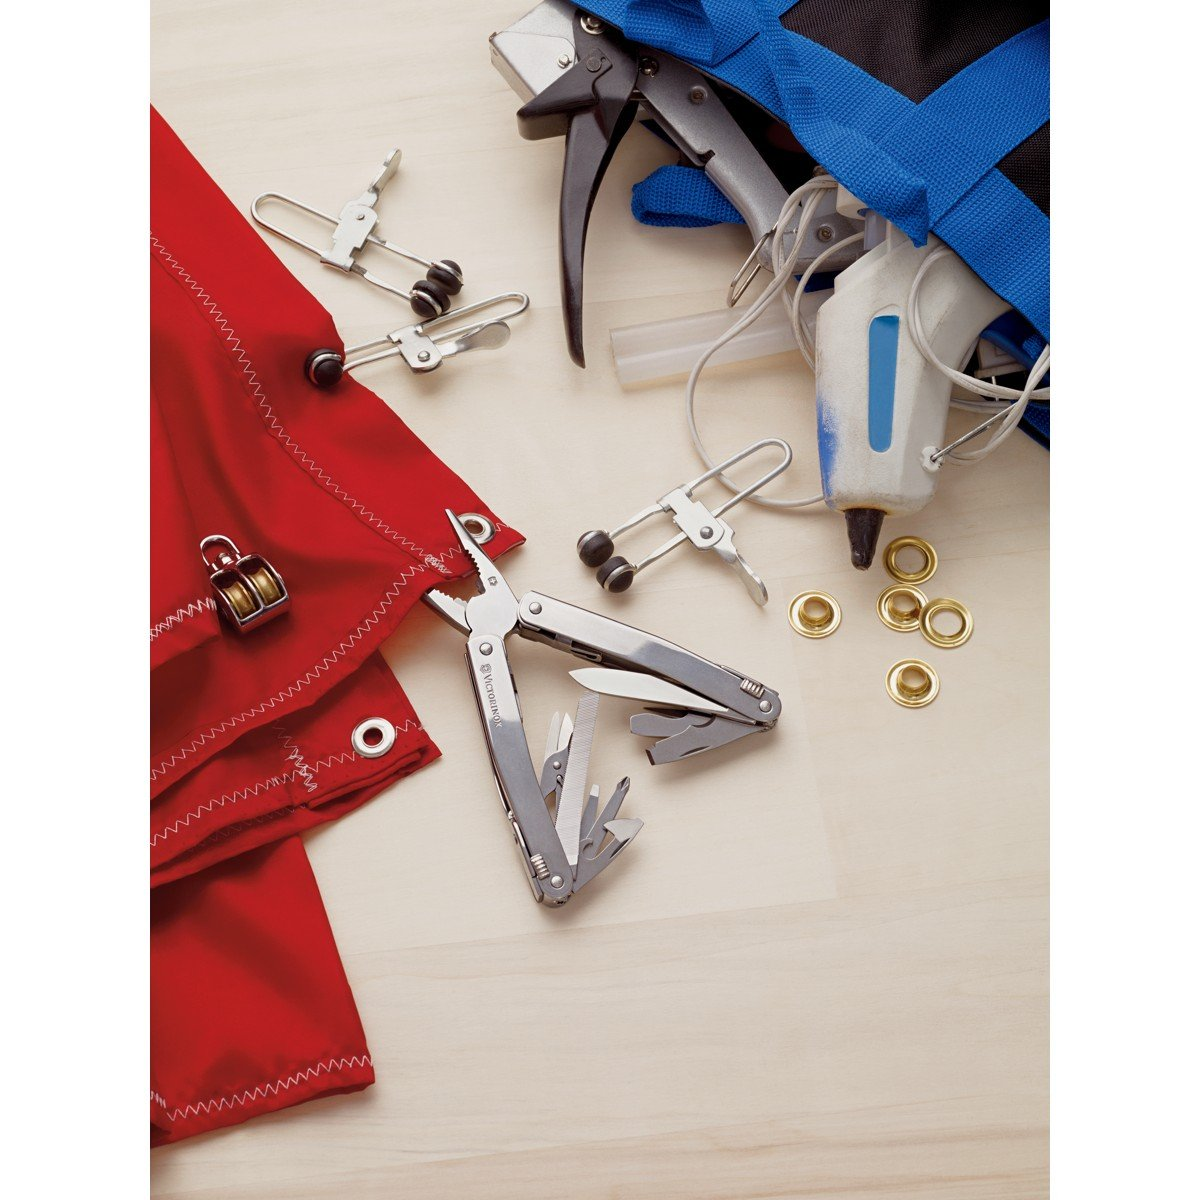 Victorinox Swiss Army SwissTool Spirit Multi-Tool, Includes Leather Pouch by Victorinox (Image #5)